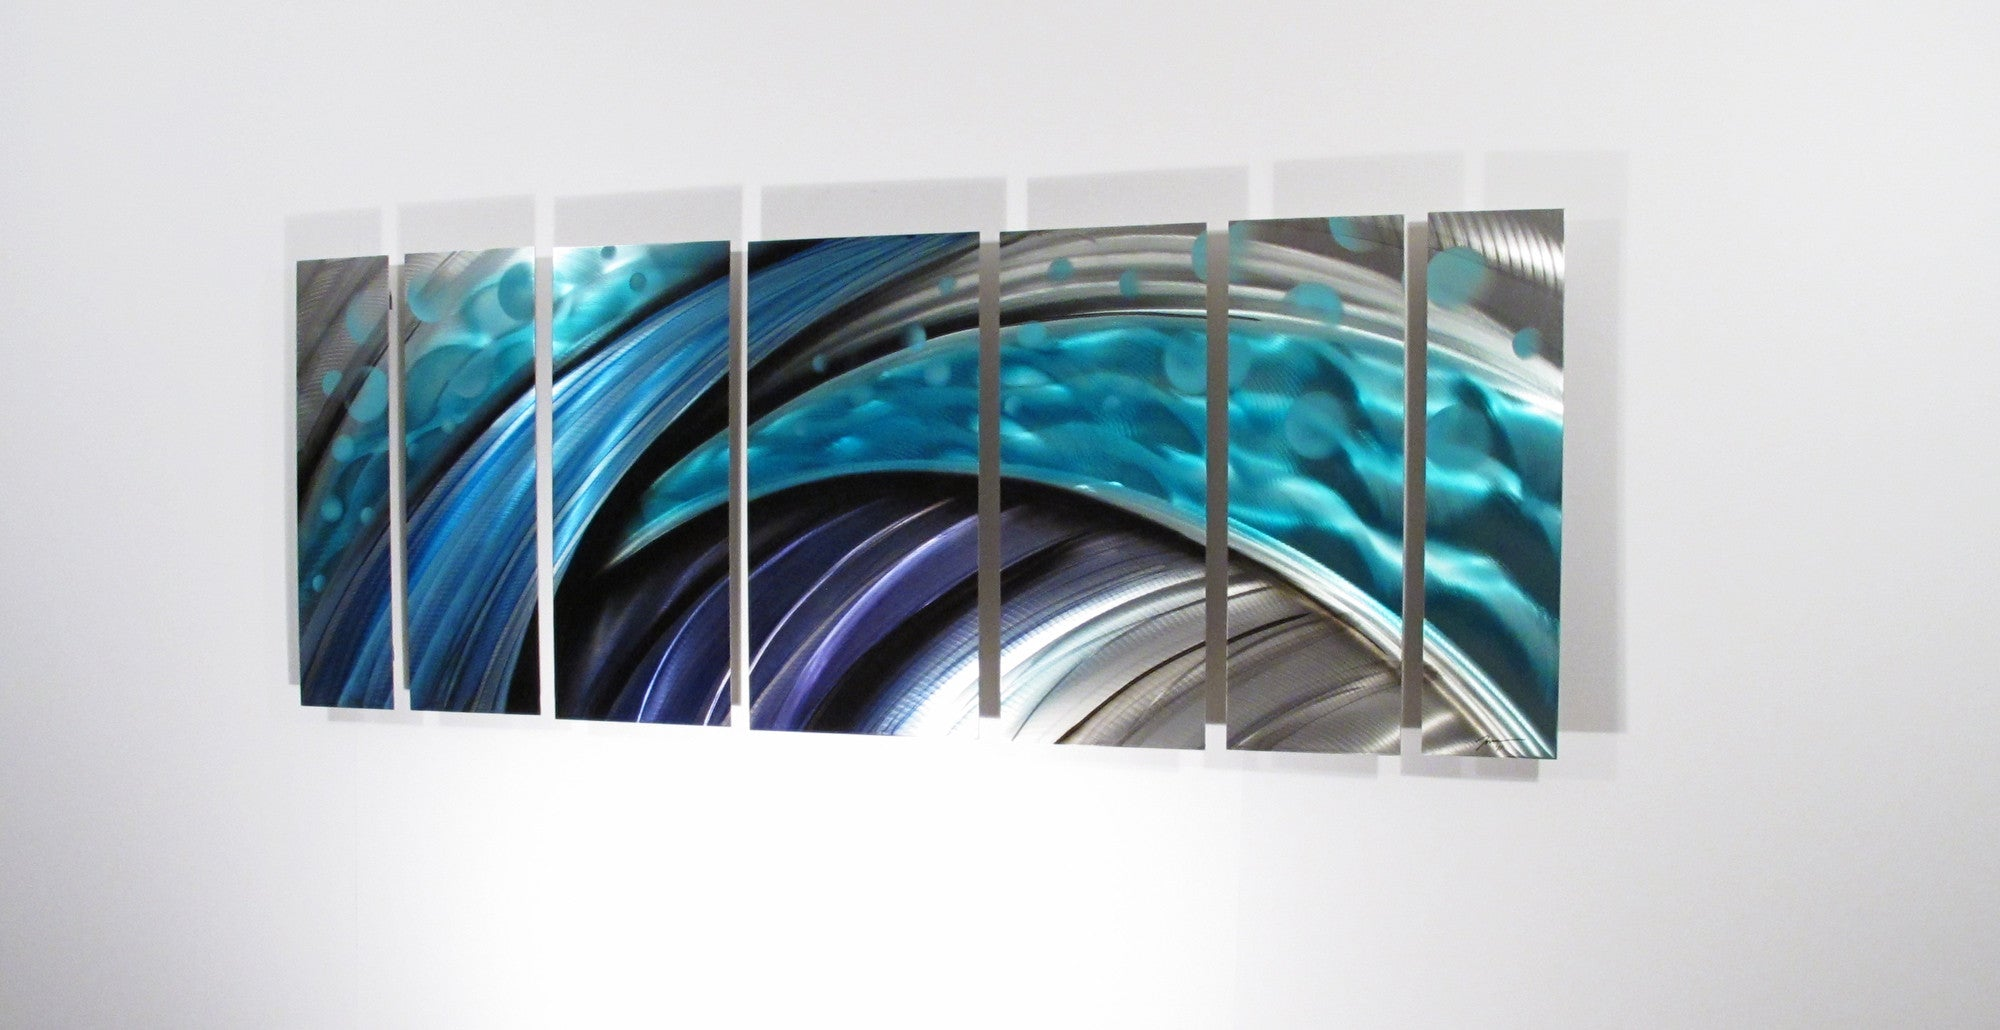 "Teal Metal Wall Art Typhoon"" Large Modern Abstract Metal Wall Art Sculpture Blue  Dv8"